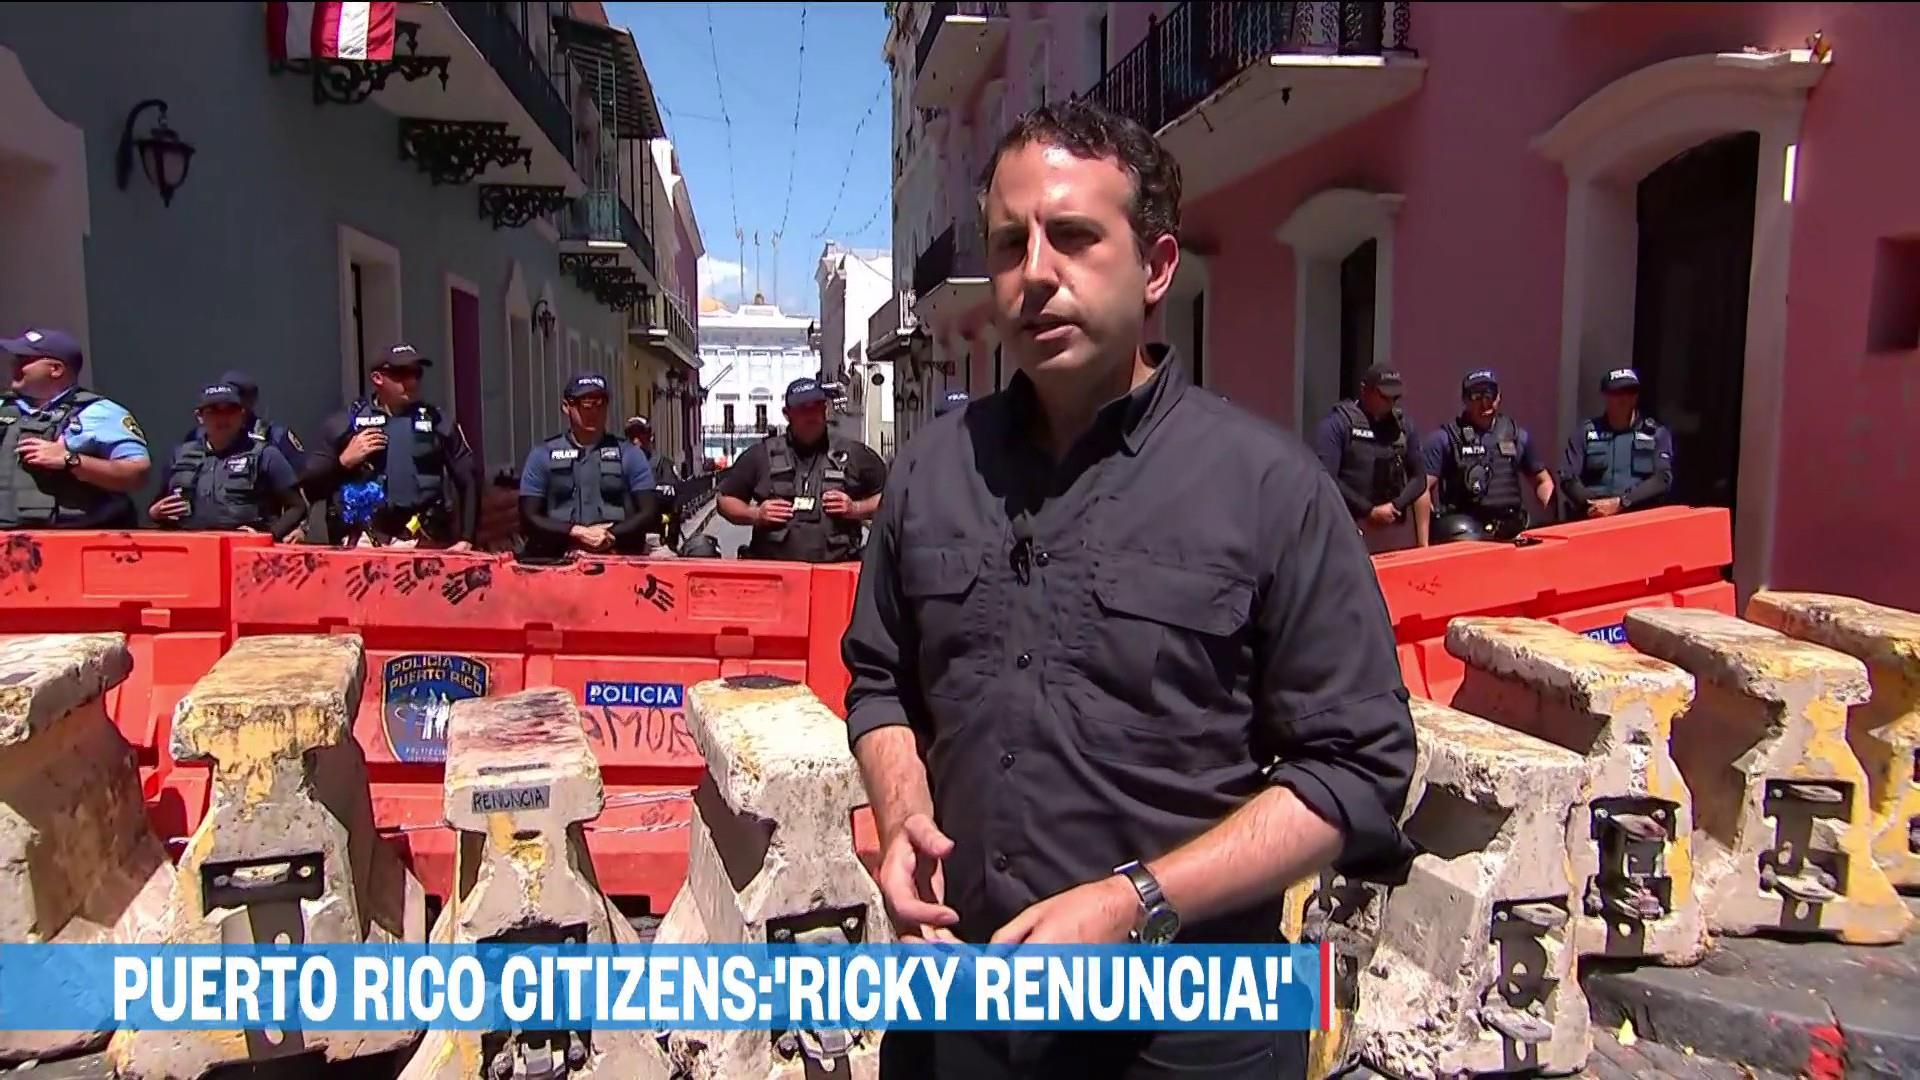 U.S. elected officials call for Puerto Rico governor to resign as protests continue